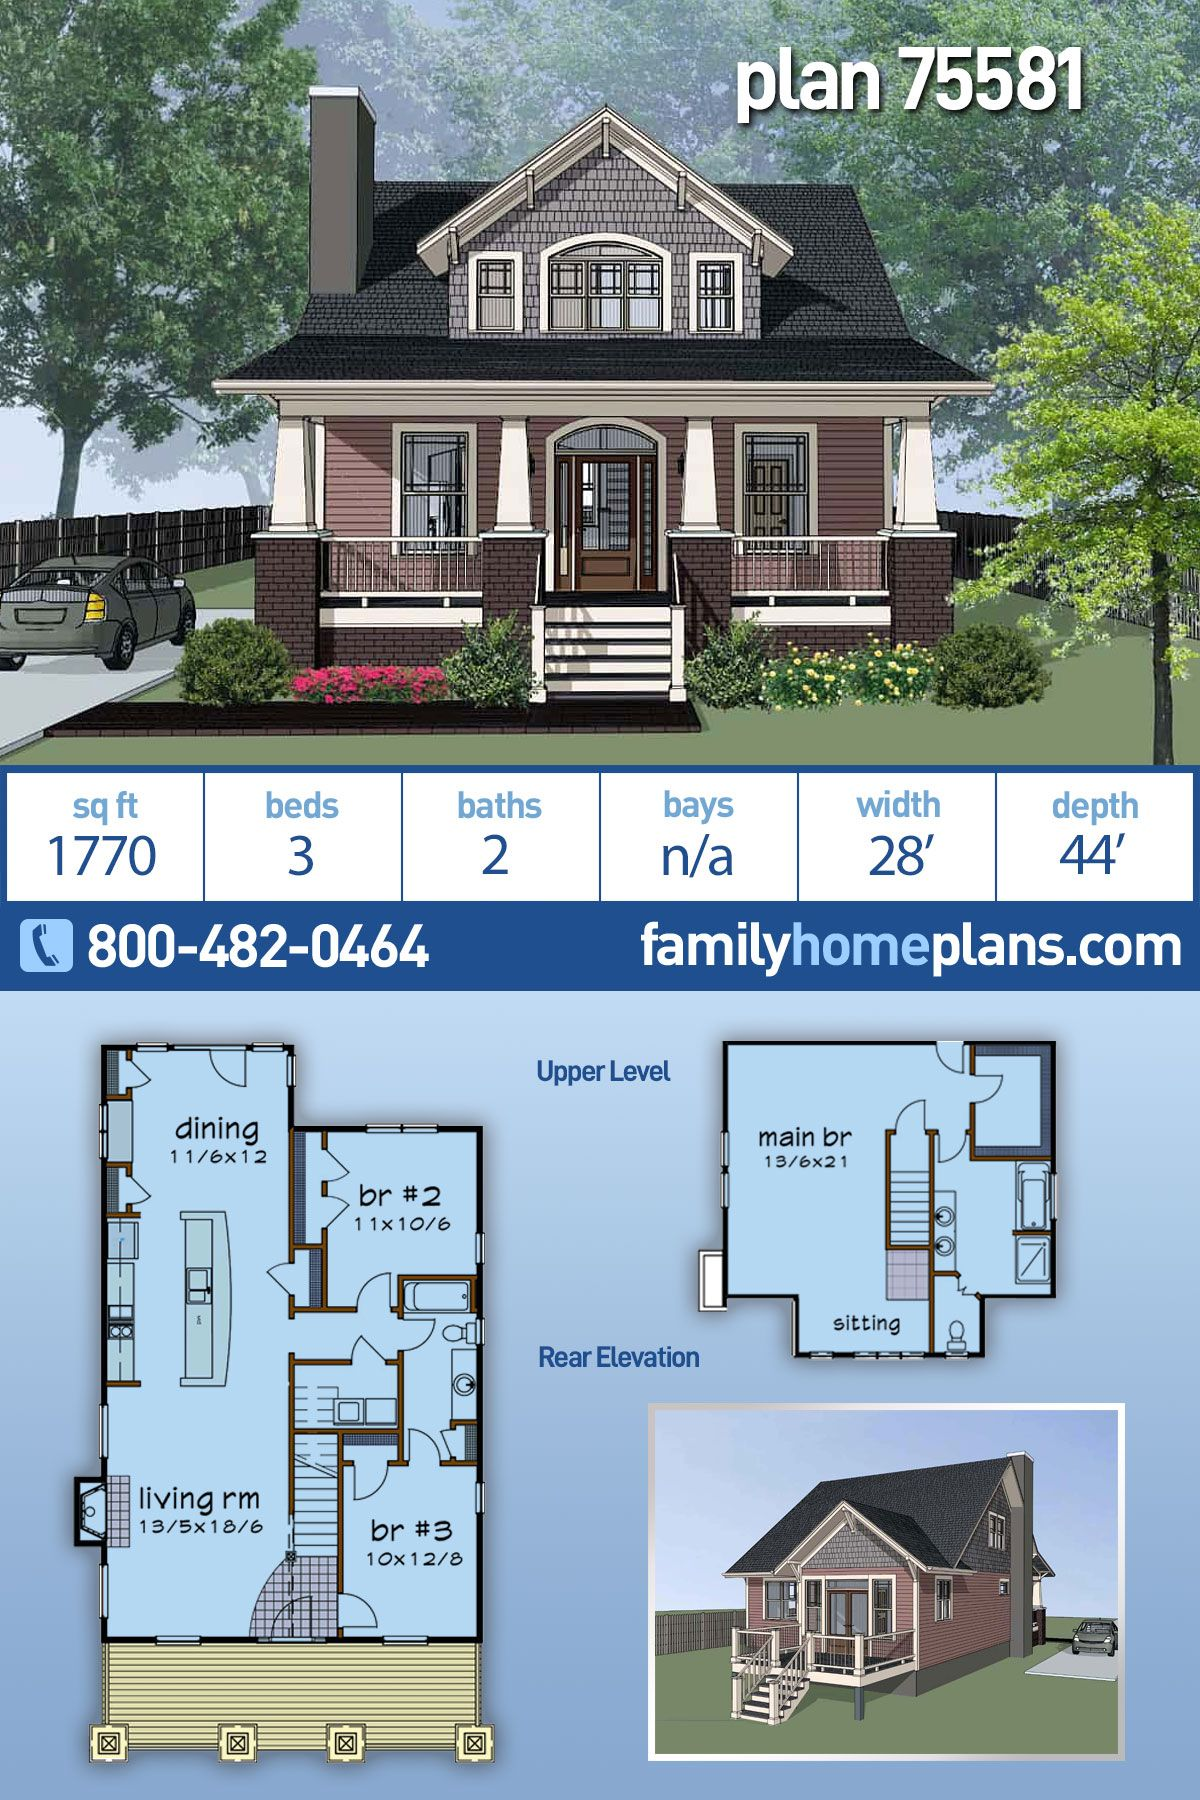 Narrow Lot Style House Plan 75581 With 3 Bed 2 Bath In 2020 House Layout Plans House Plans House